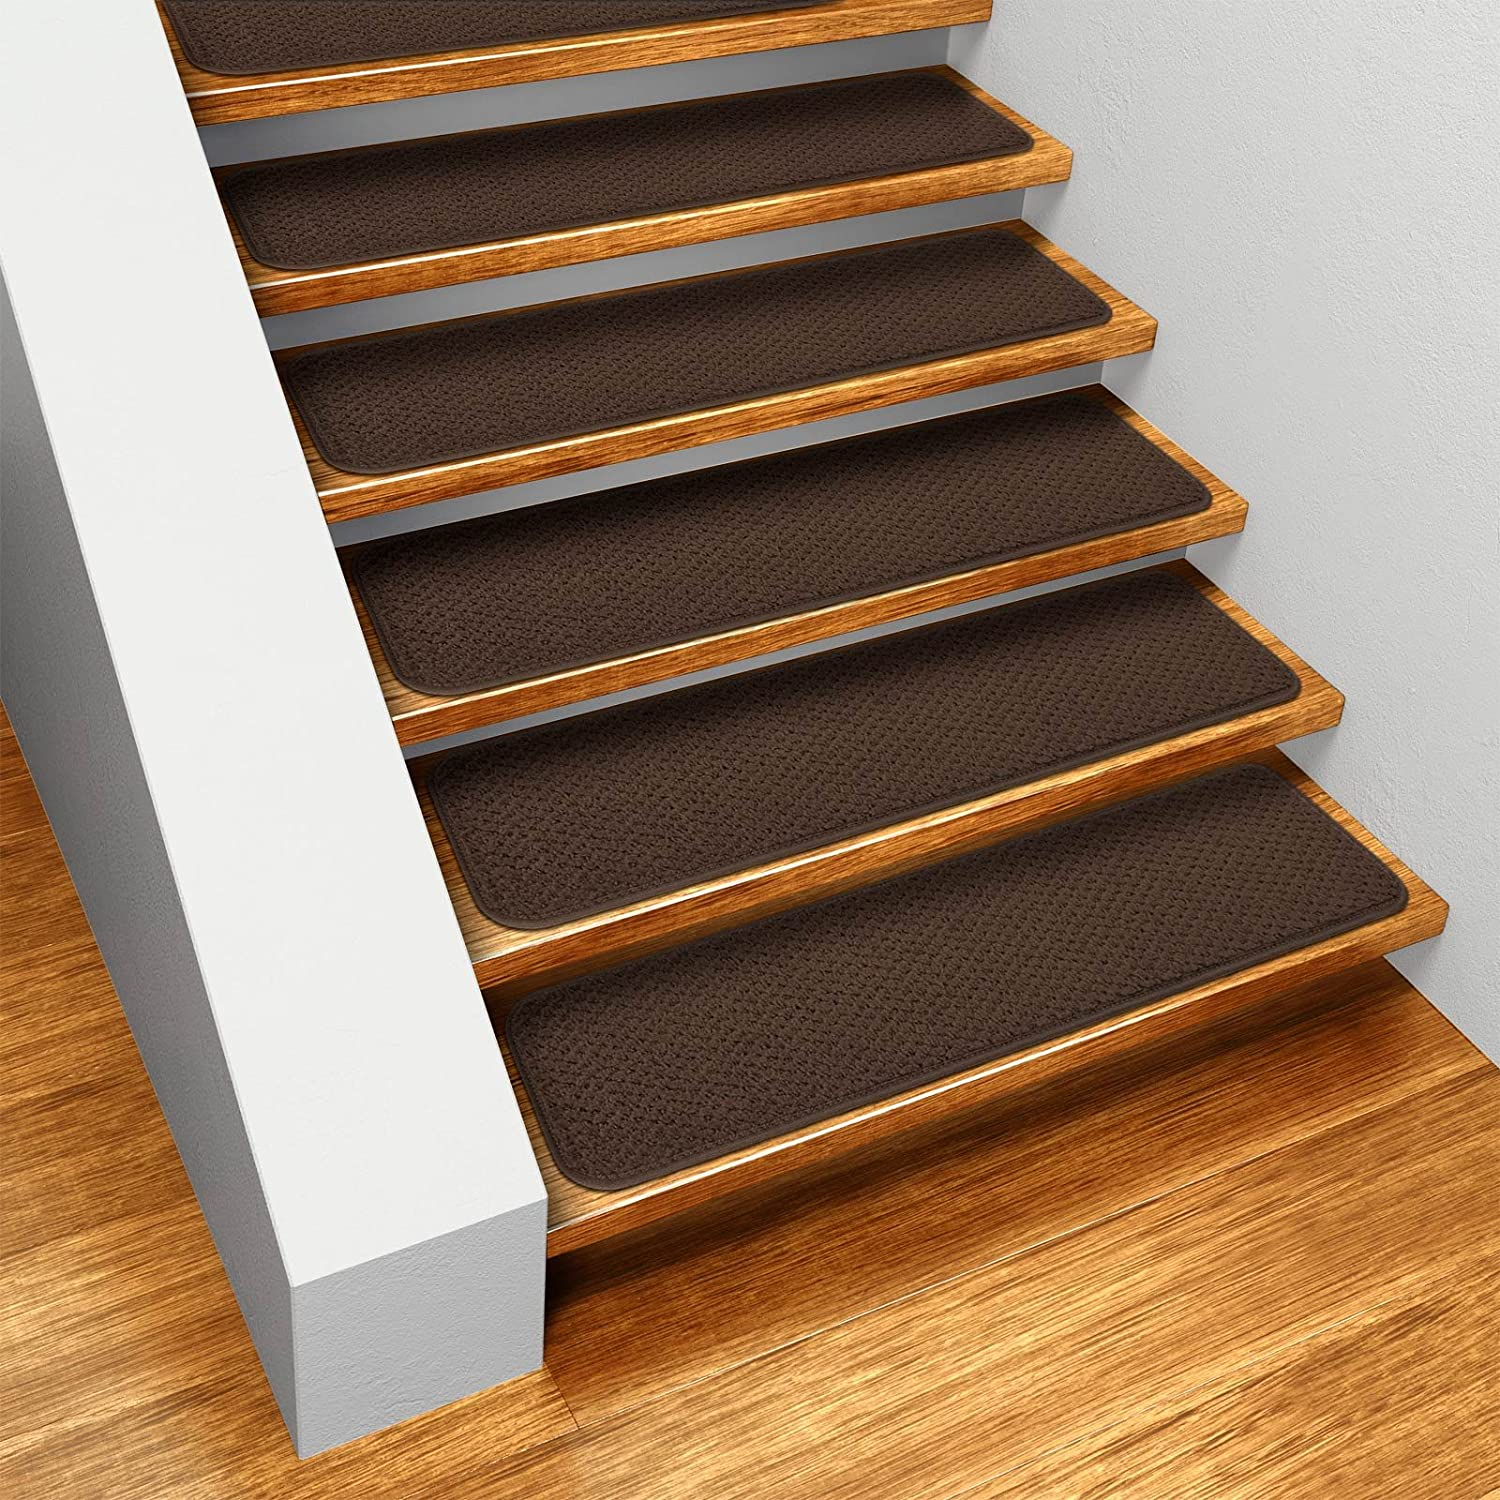 Amazon.com: House, Home And More Set Of 15 Skid Resistant Carpet Stair  Treads   Chocolate Brown   8 In. X 30 In.   Several Other Sizes To Choose  From: Home ...